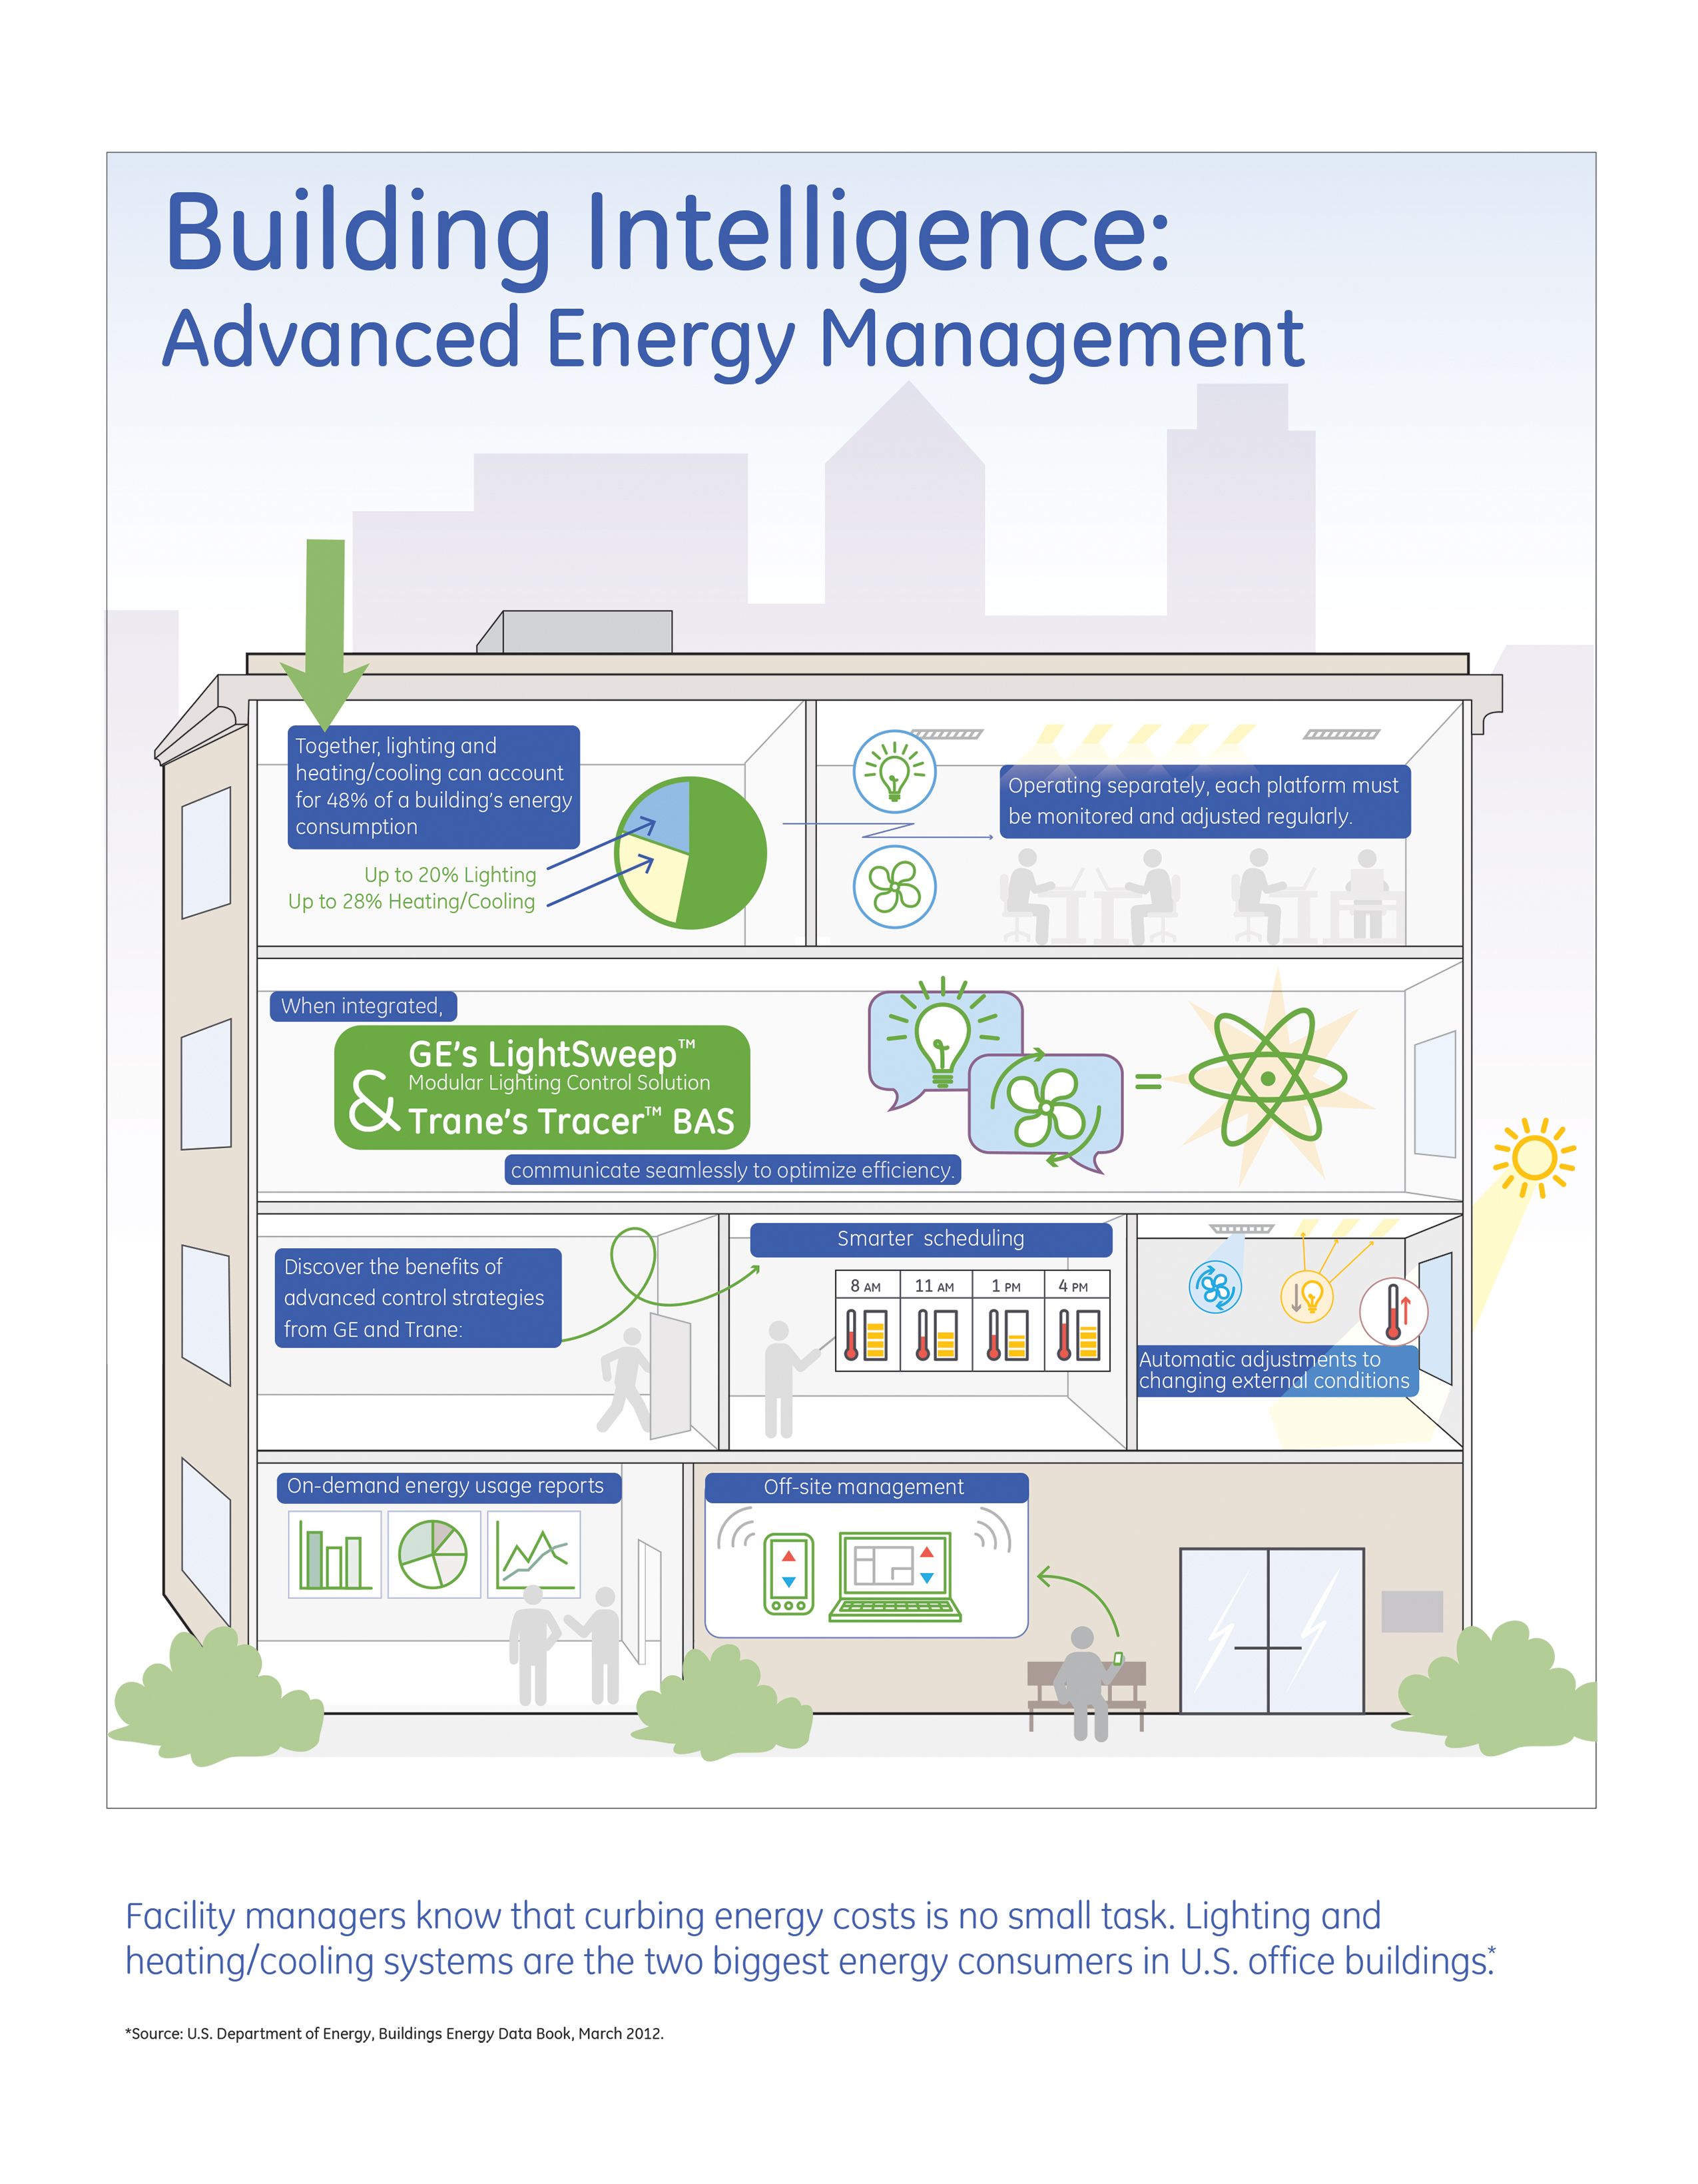 energy costs controlled for commercial buildings with new advanced  Industrial Building energy costs controlled for commercial